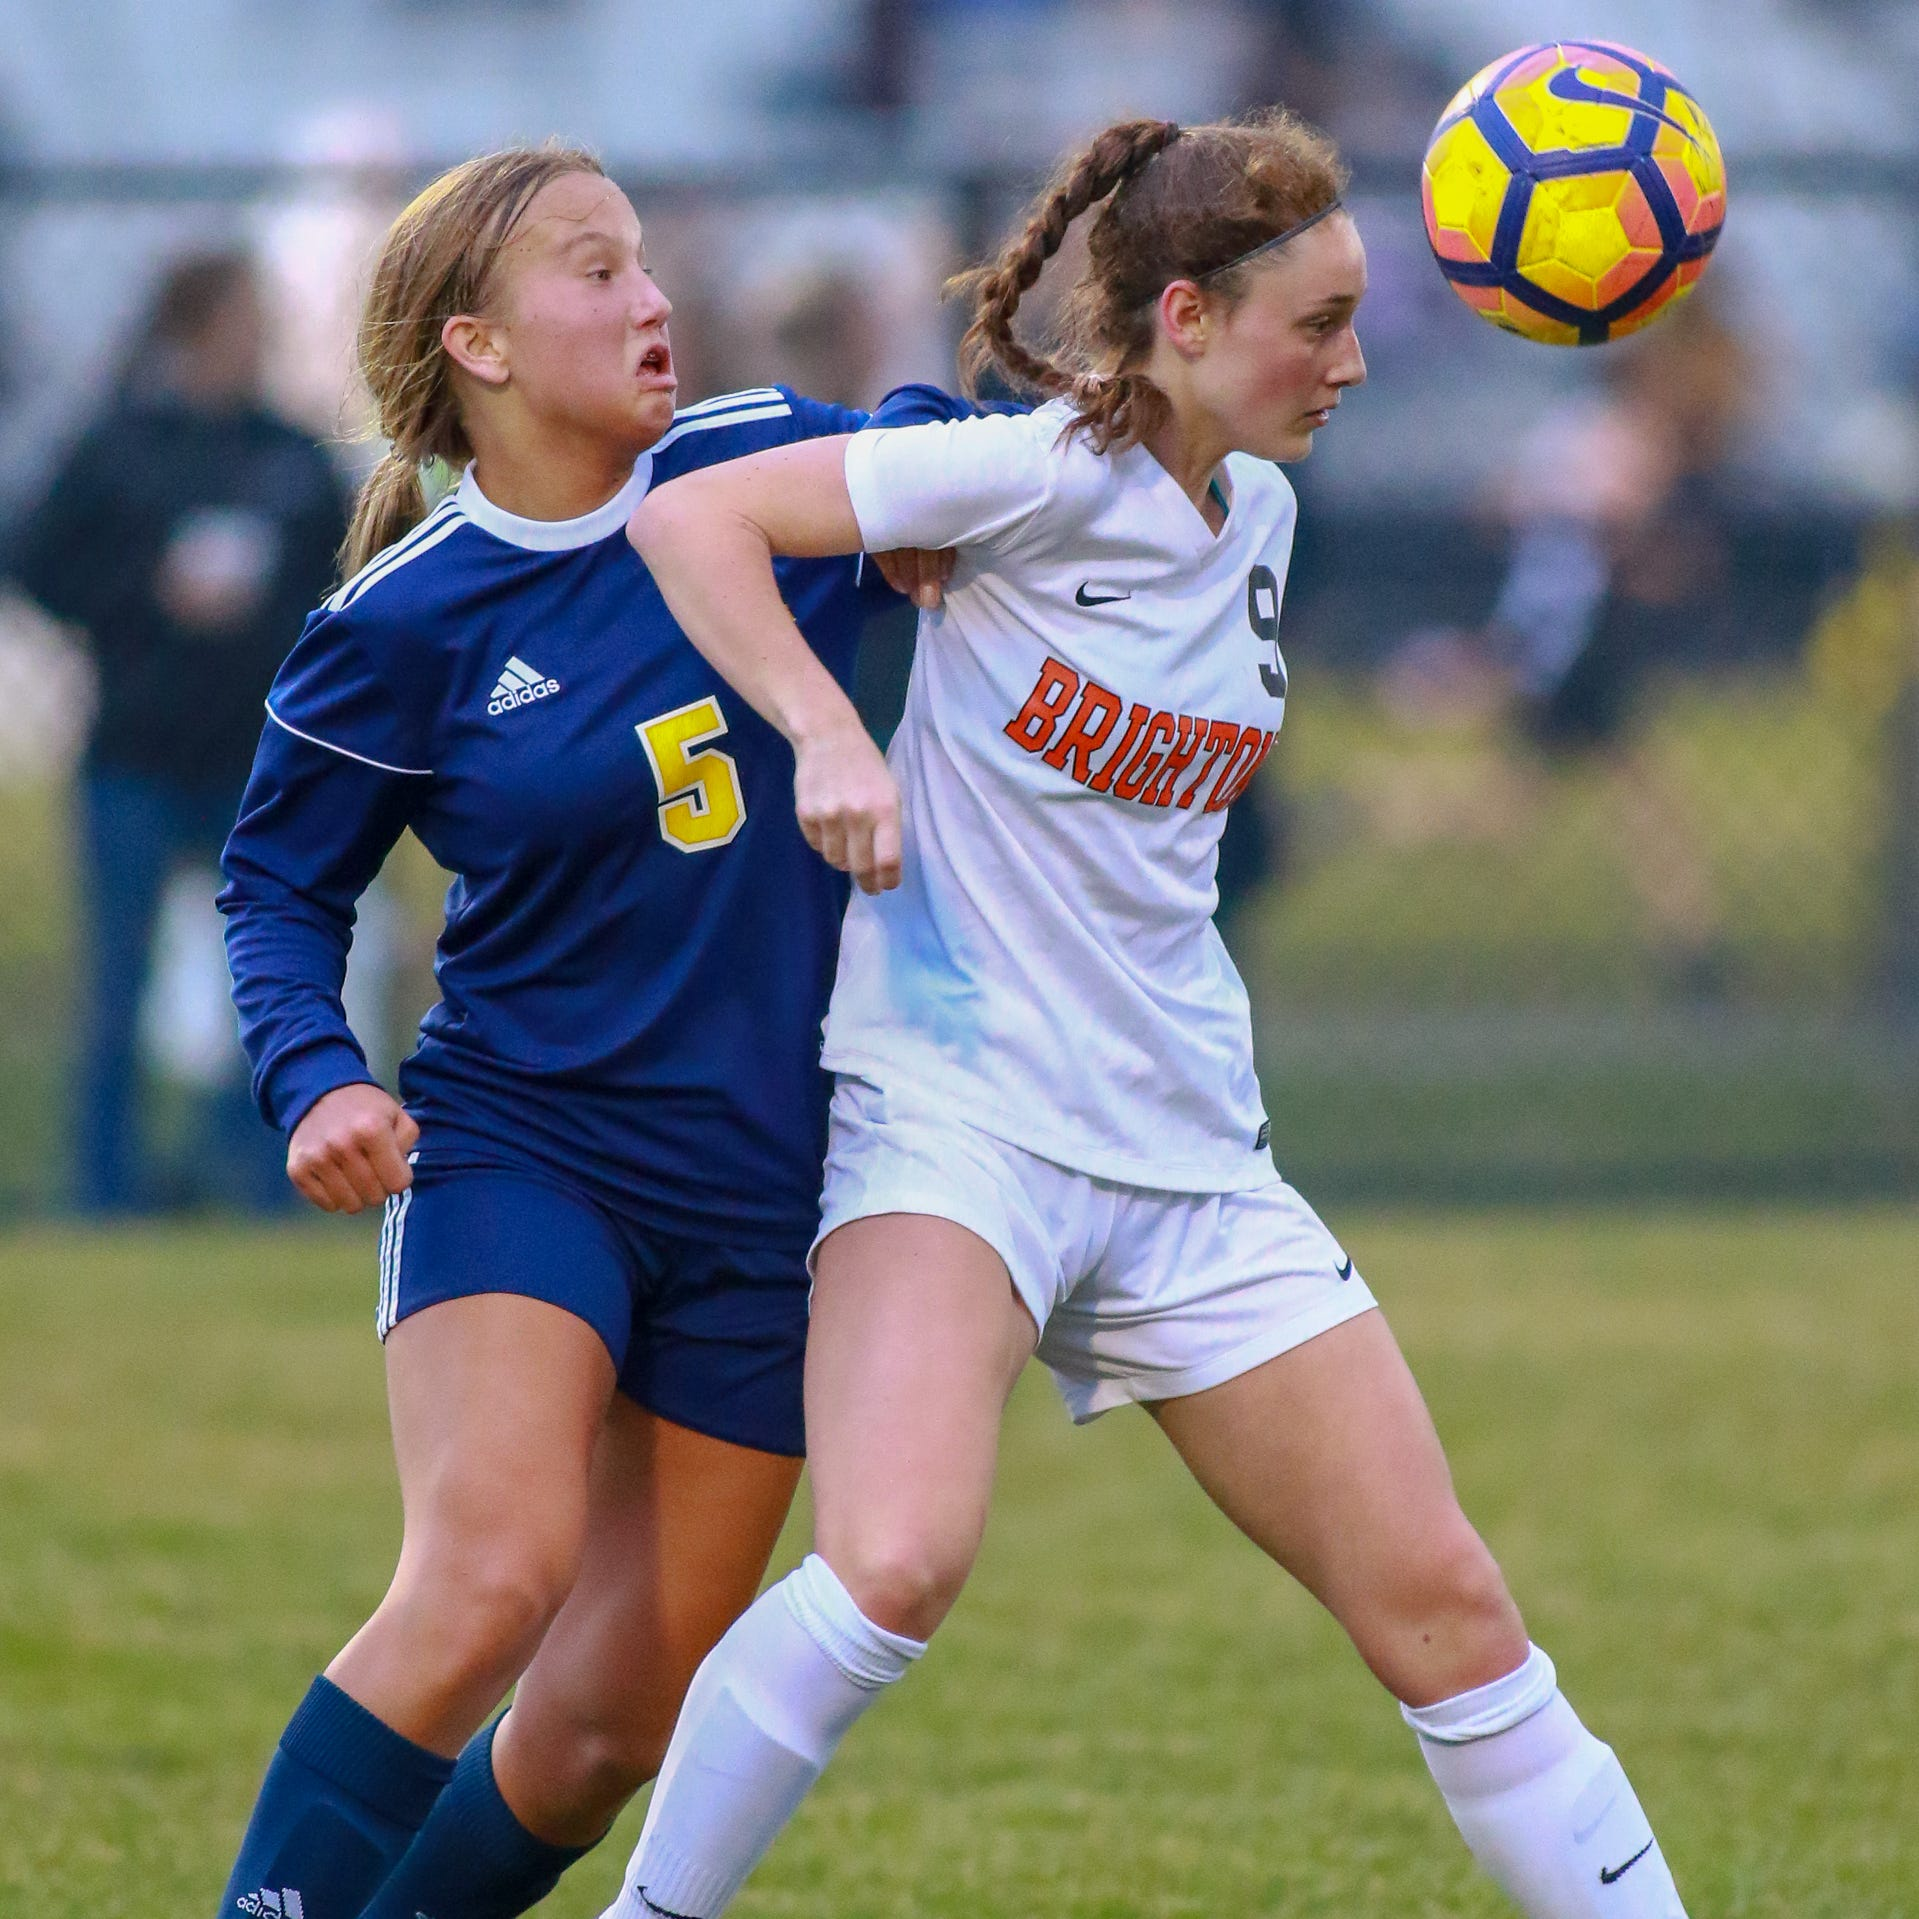 After beating Brighton, Hartland girls soccer looks ahead to No. 1 Novi